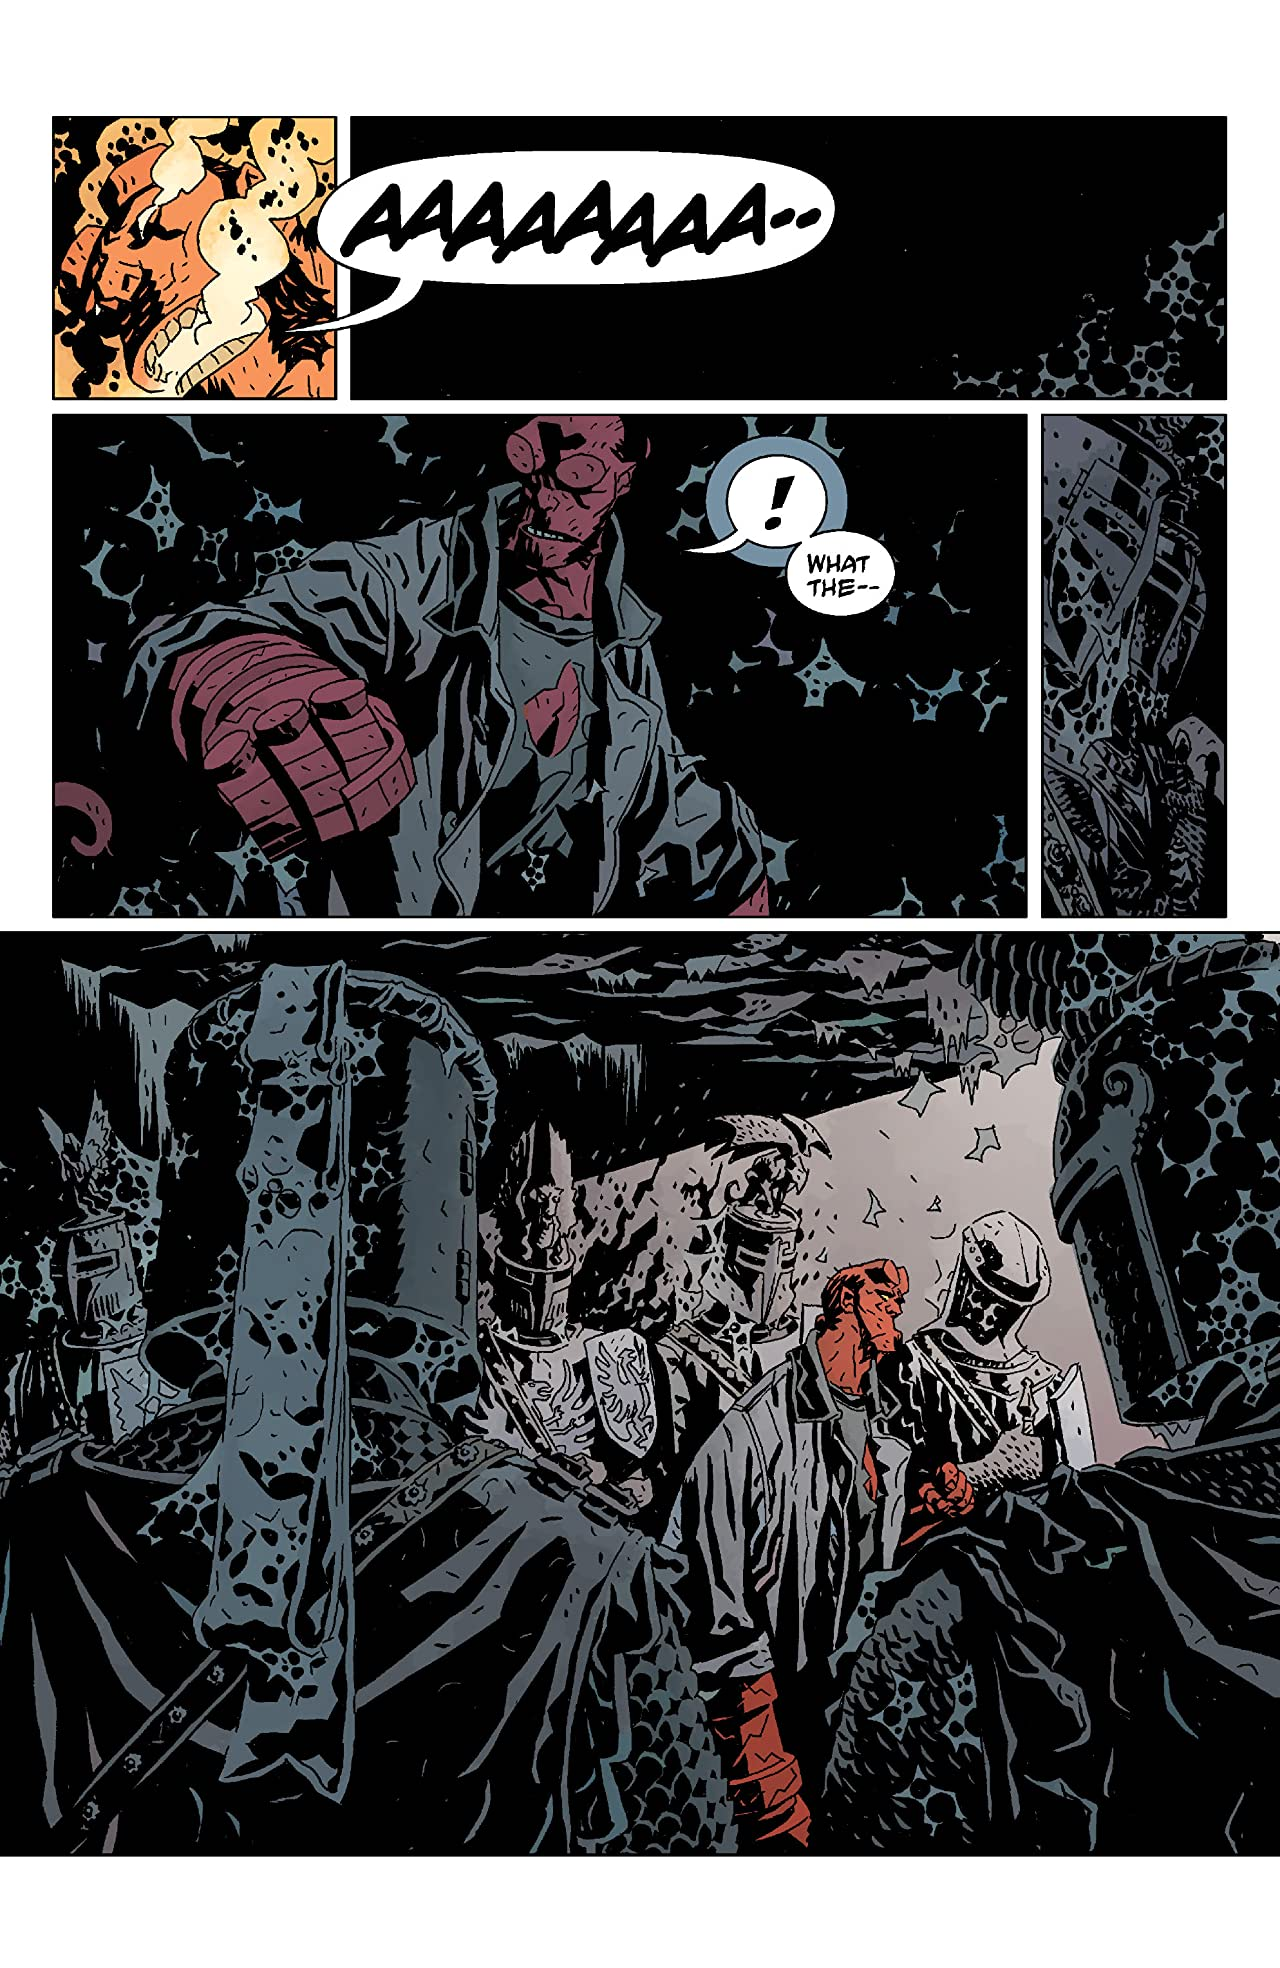 Hellboy: The Wild Hunt #2